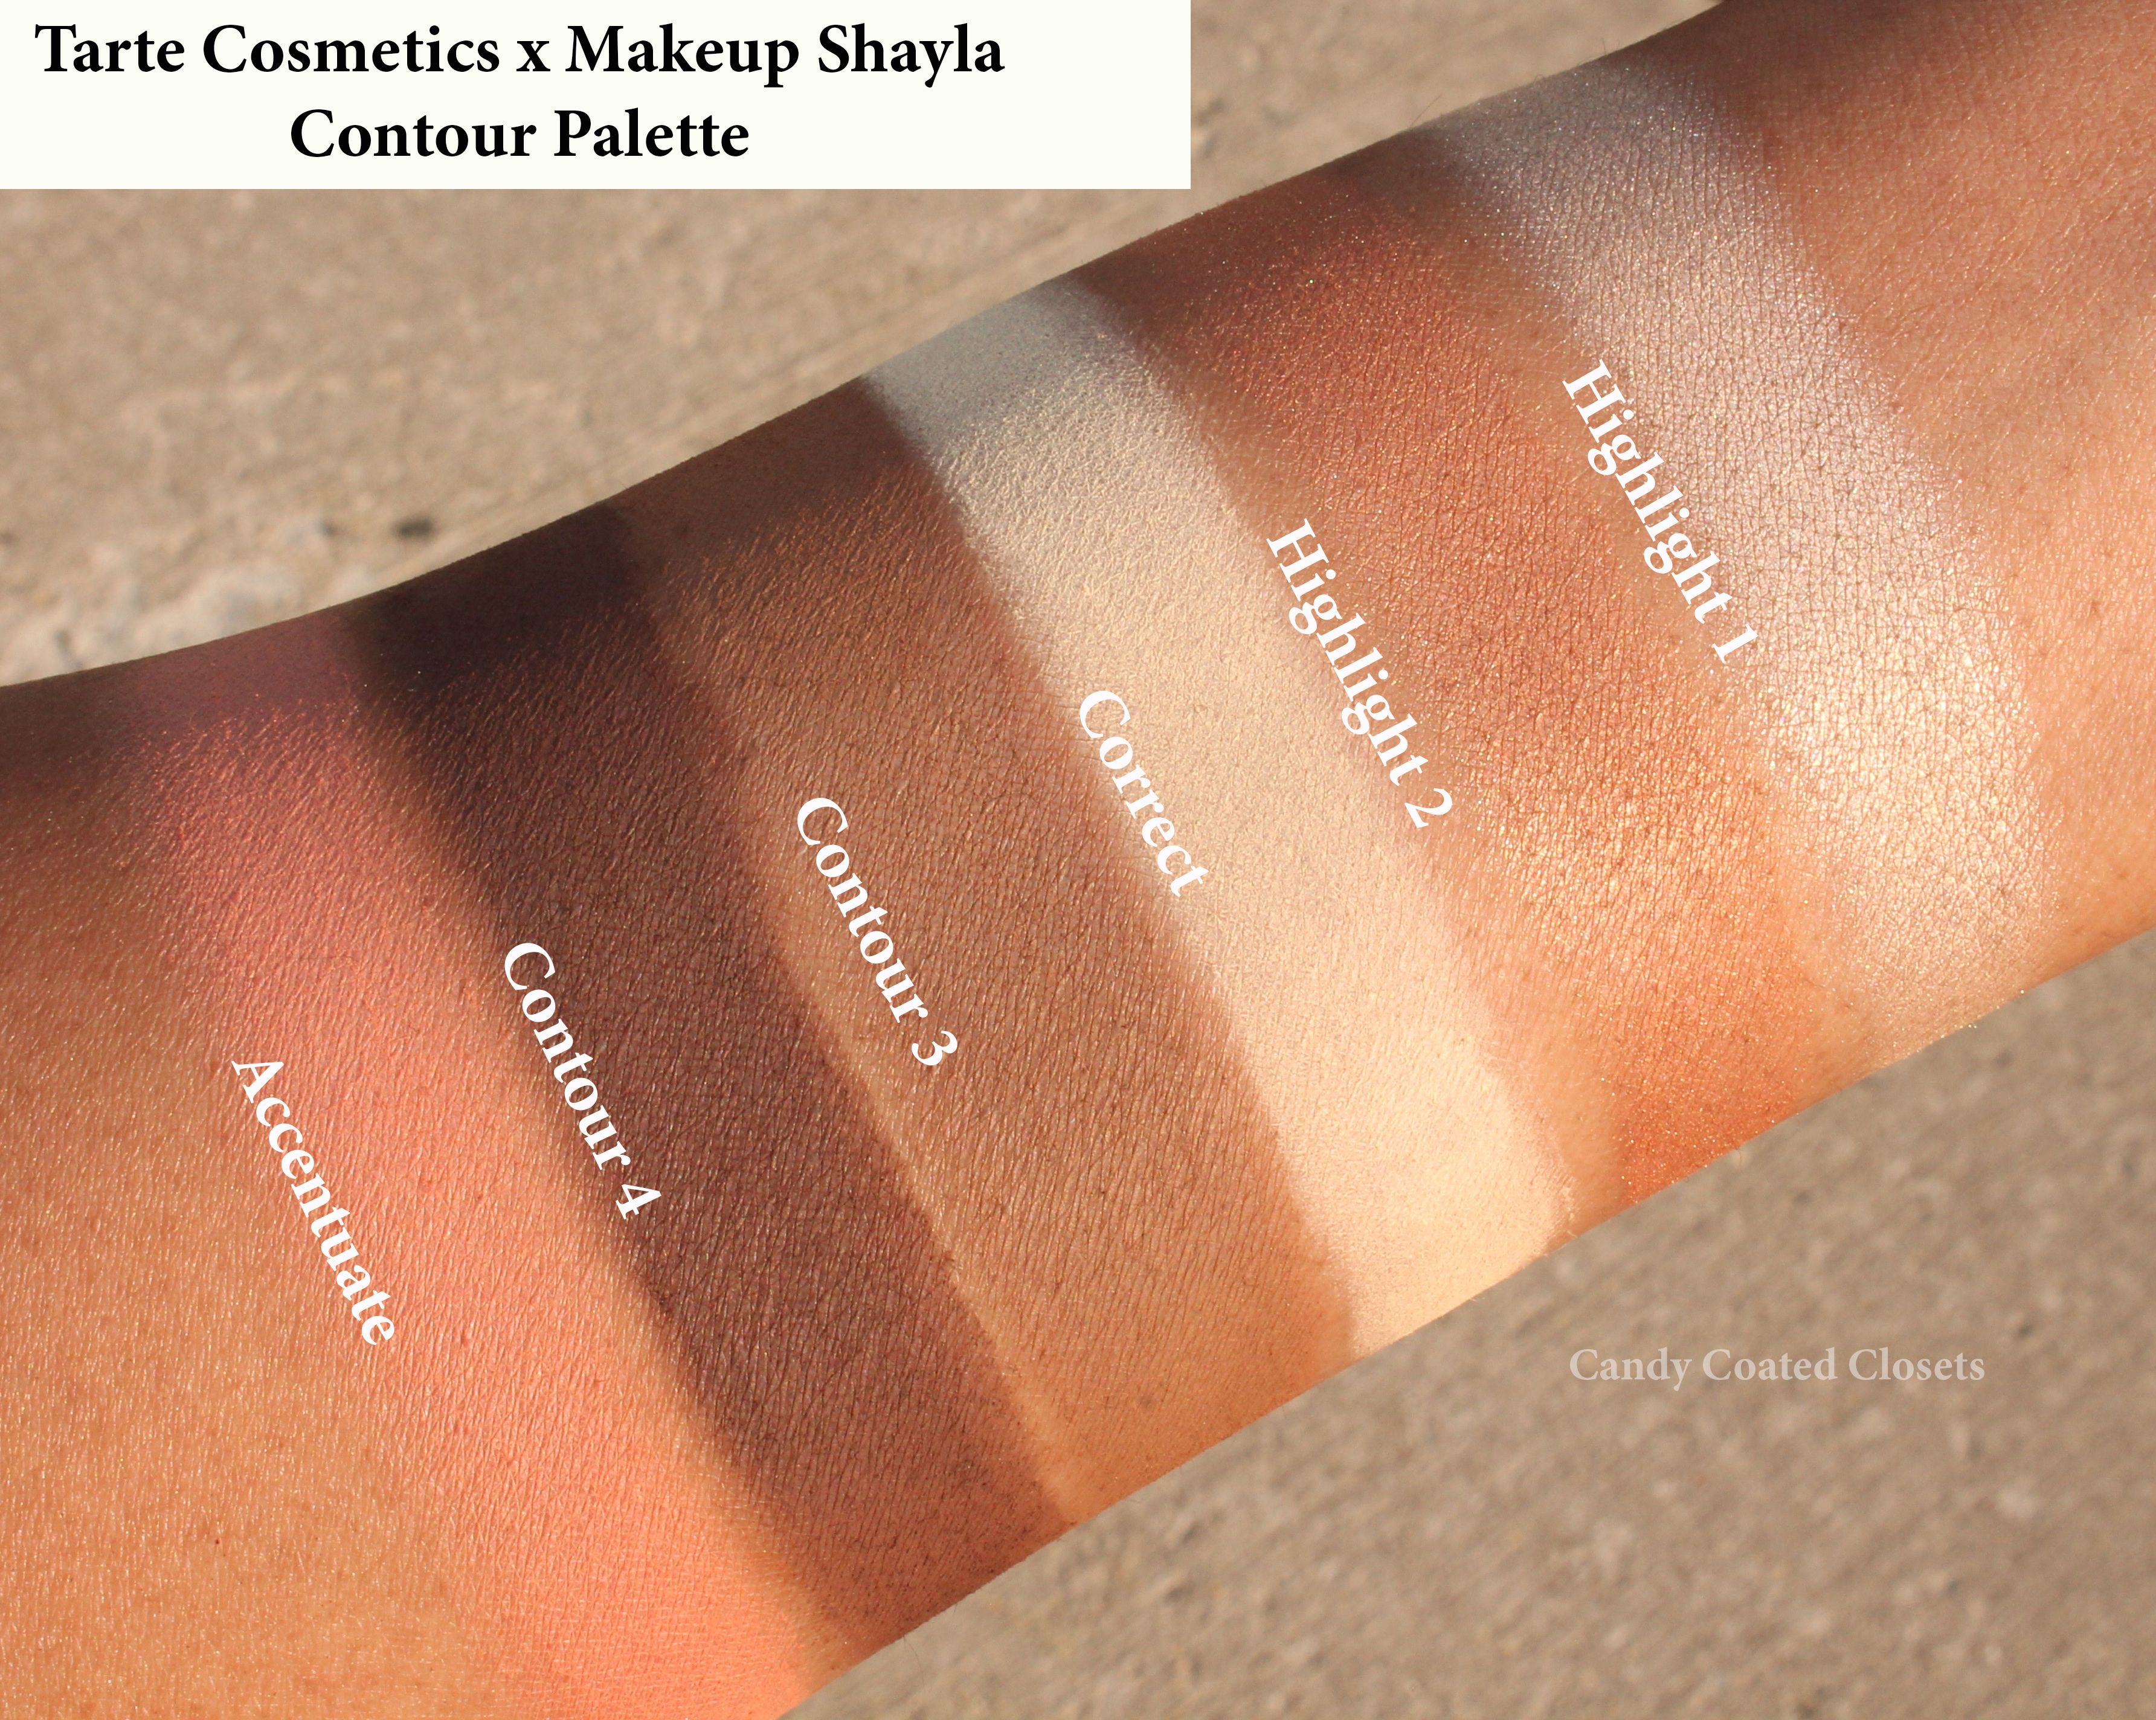 Tarte Cosmetics X Makeup Shayla Contour Palette Review & Swatches